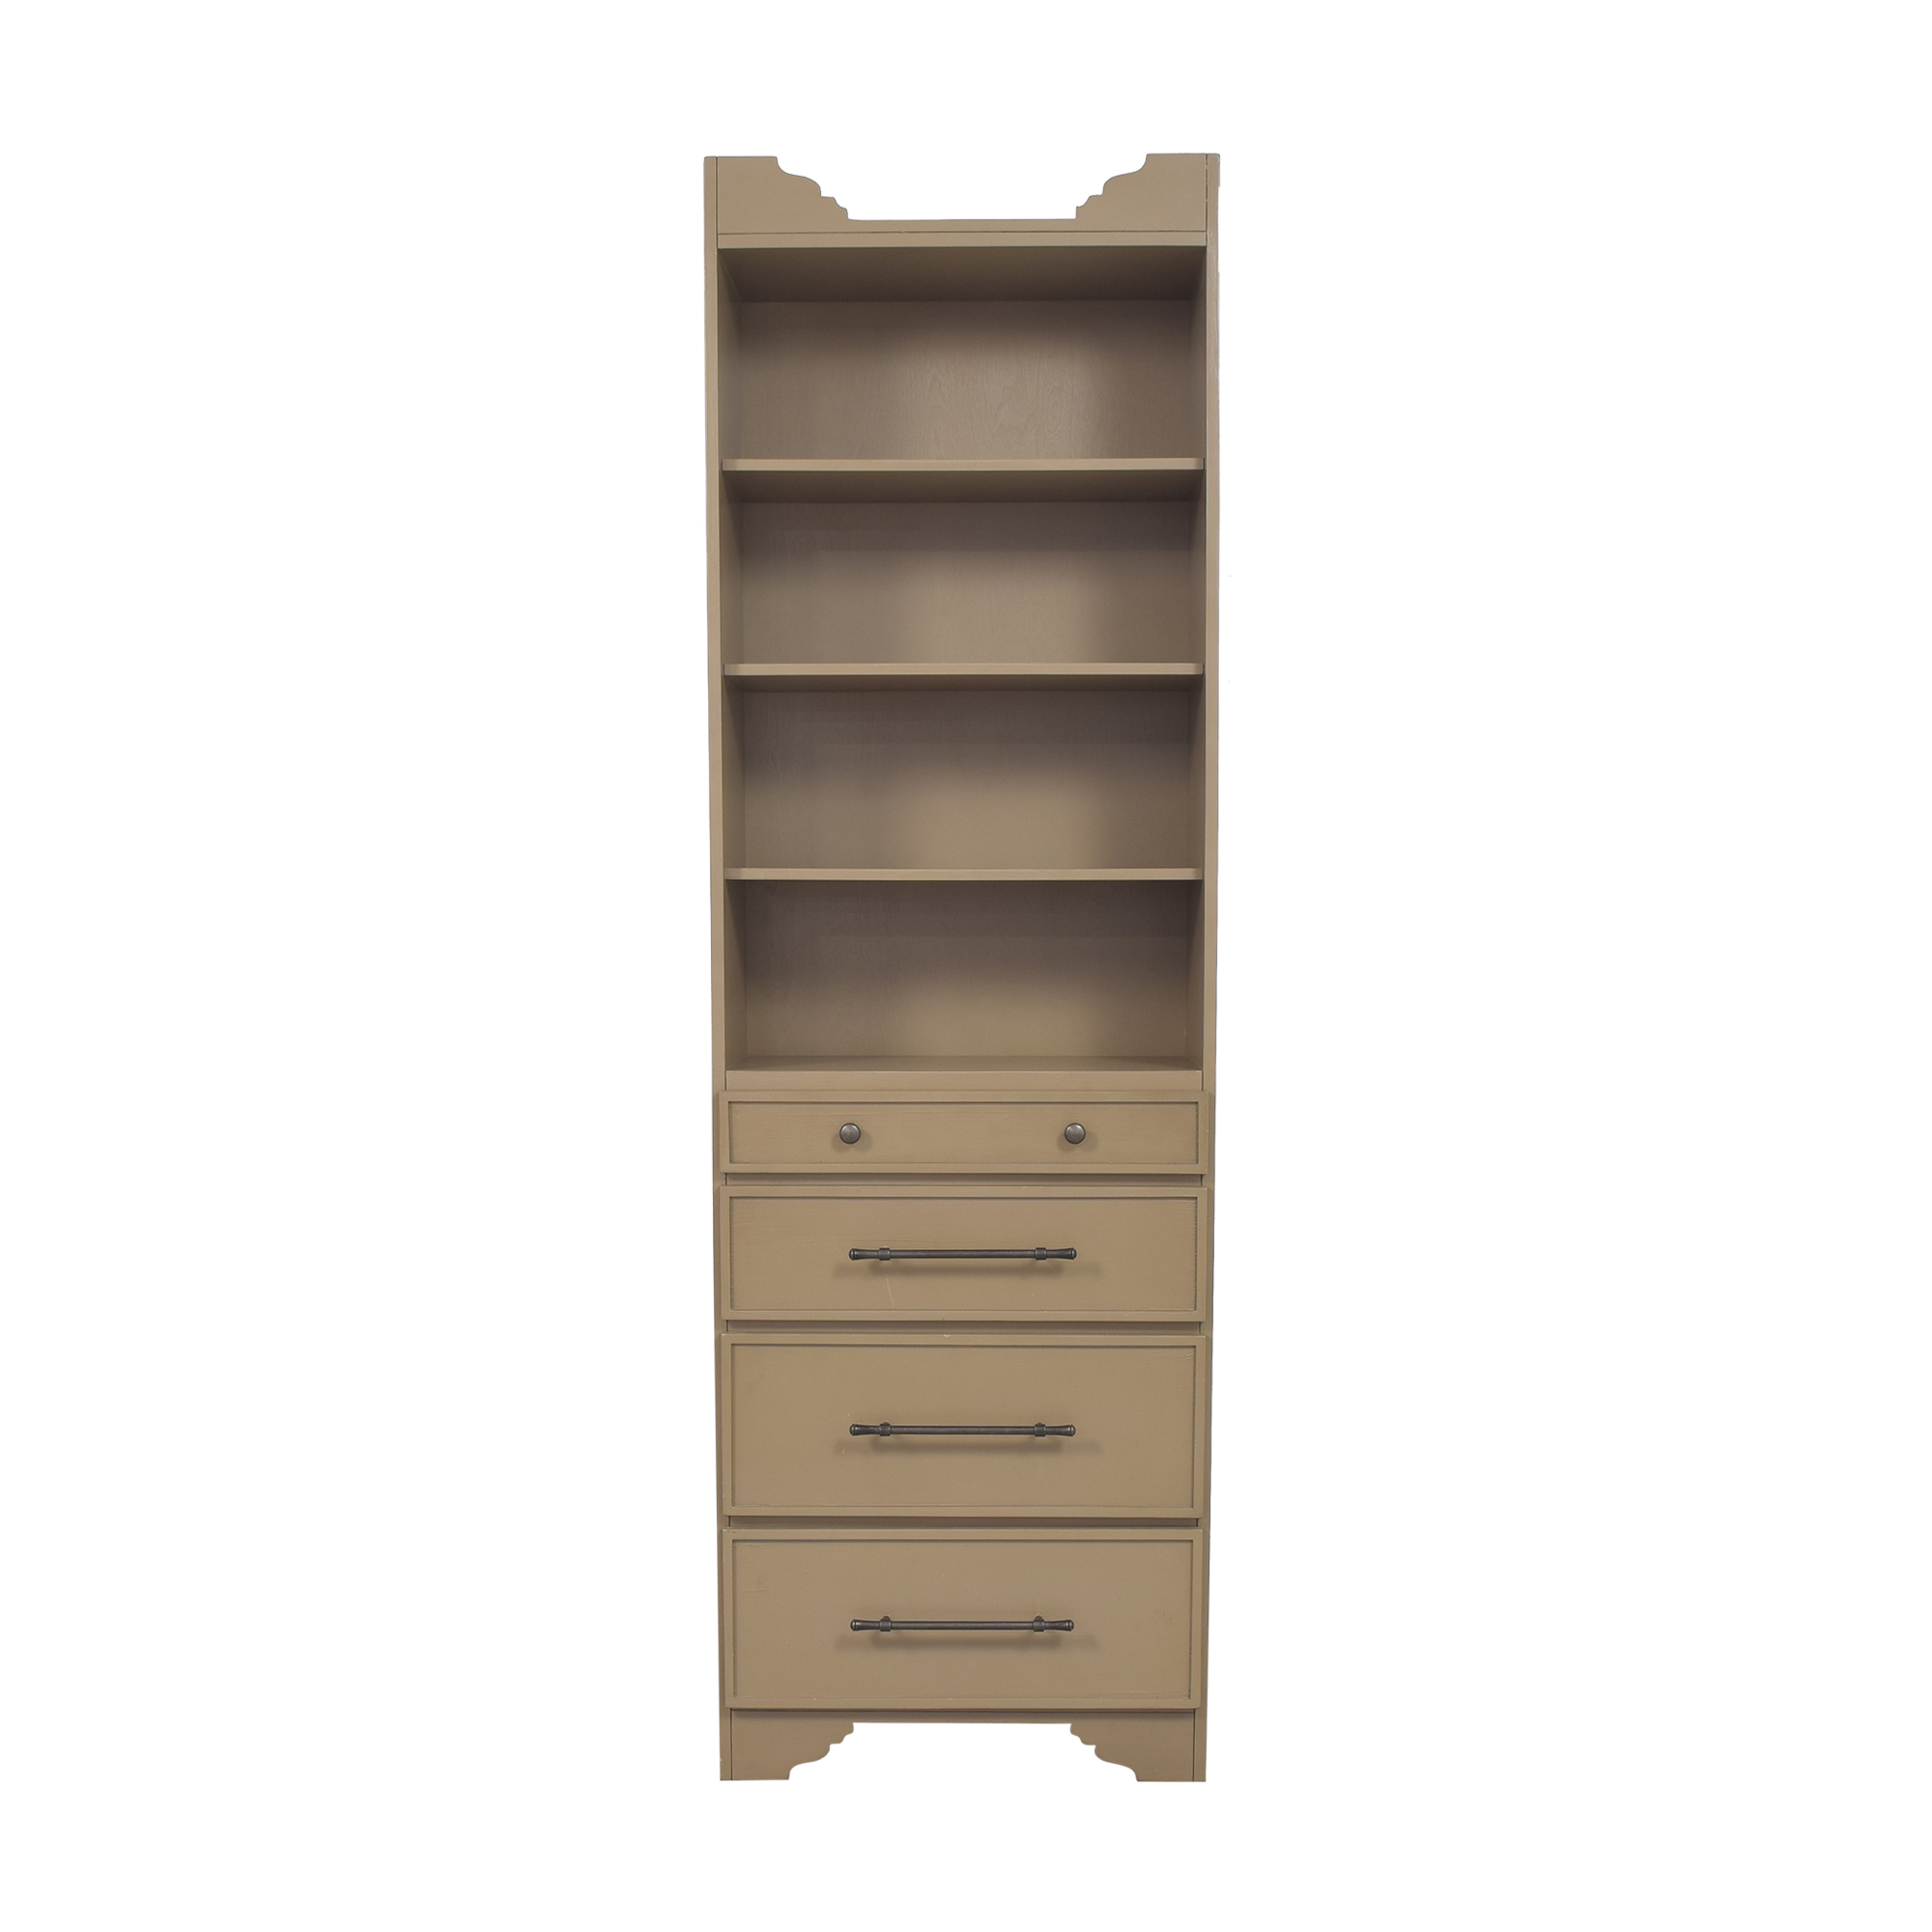 Ballard Designs Ballard Designs Sarah Storage Tower with Drawers dimensions